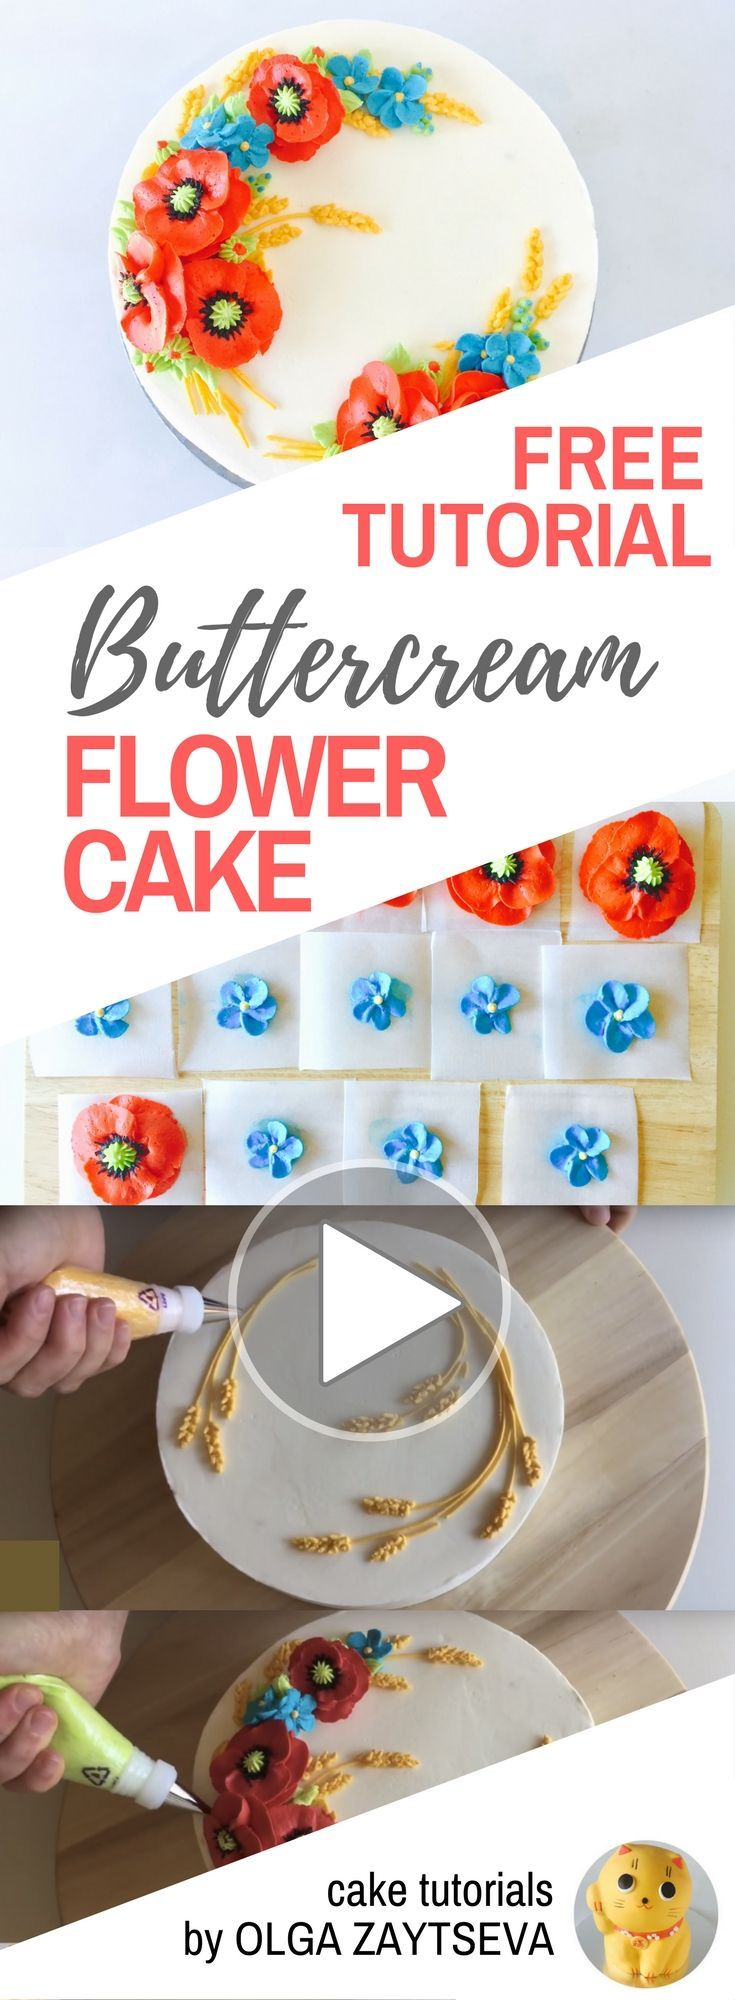 HOT CAKE TRENDS How to make Red Poppy Buttercream flower cake - Cake decorating tutorial by Olga Zaytseva. Learn how to make buttercream poppies, pipe cornflowers and wheat spikelets, and create this floral wreath cake. #cakedecoratingtutorials